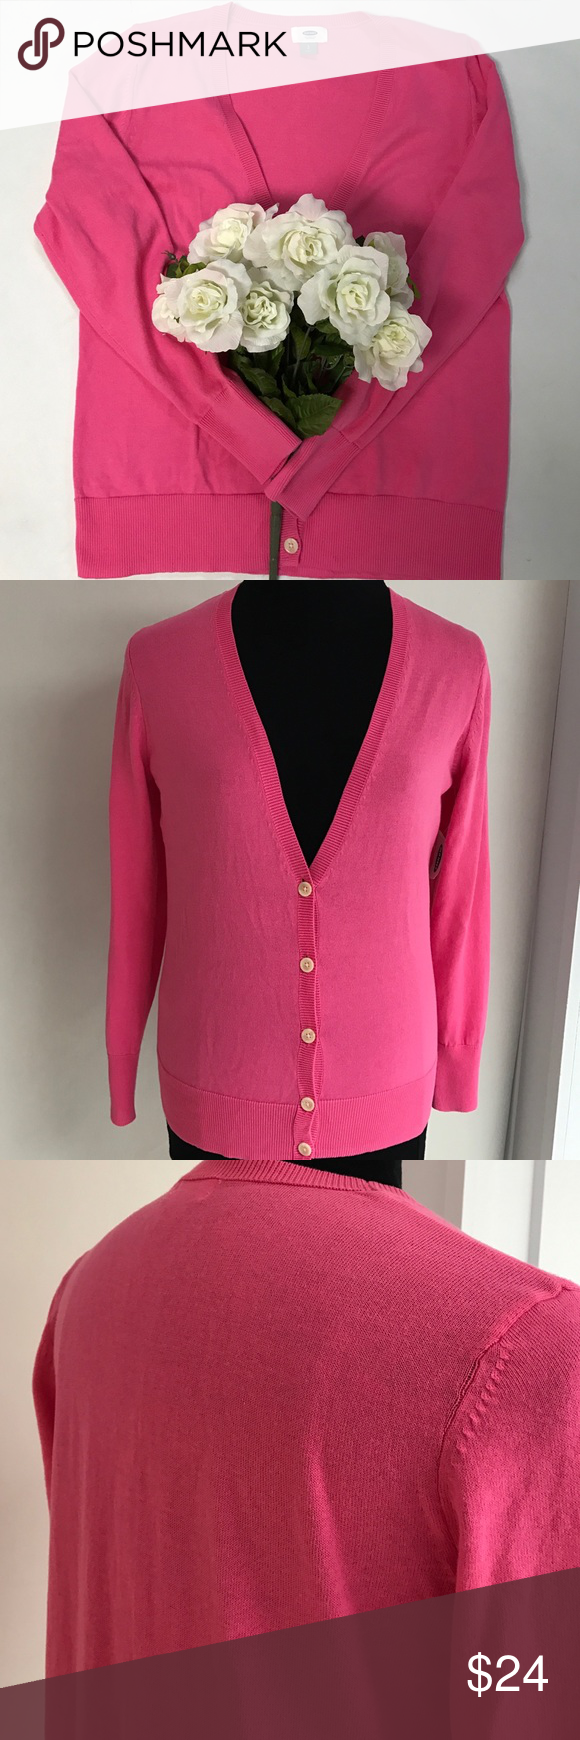 Pretty Pink Sweater NWT NWT | Pink, Neckline and Sweater cardigan